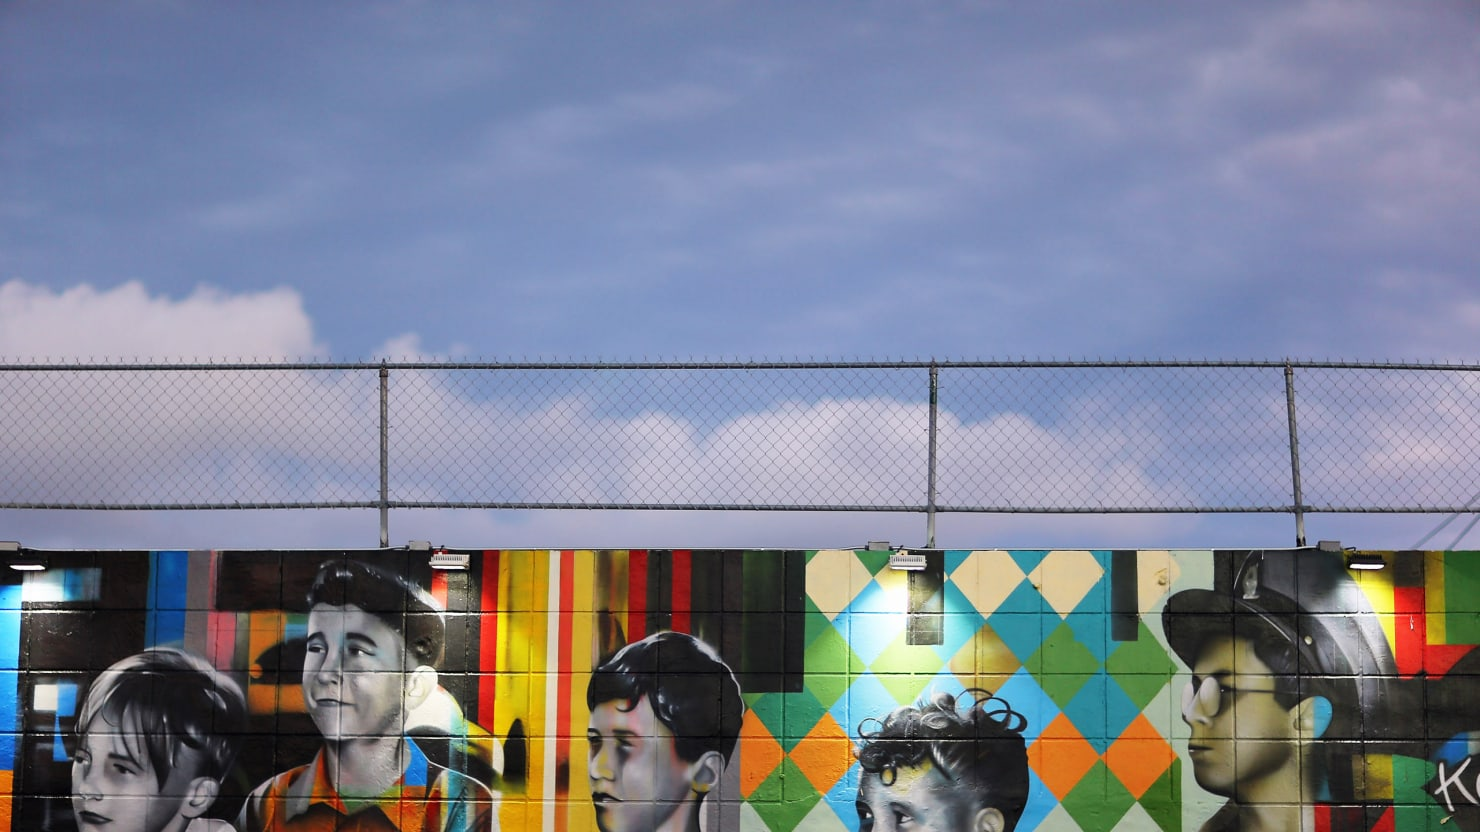 Graffiti Covered Wynwood Is Quickly Becoming Miamis Hippest New Neighborhood